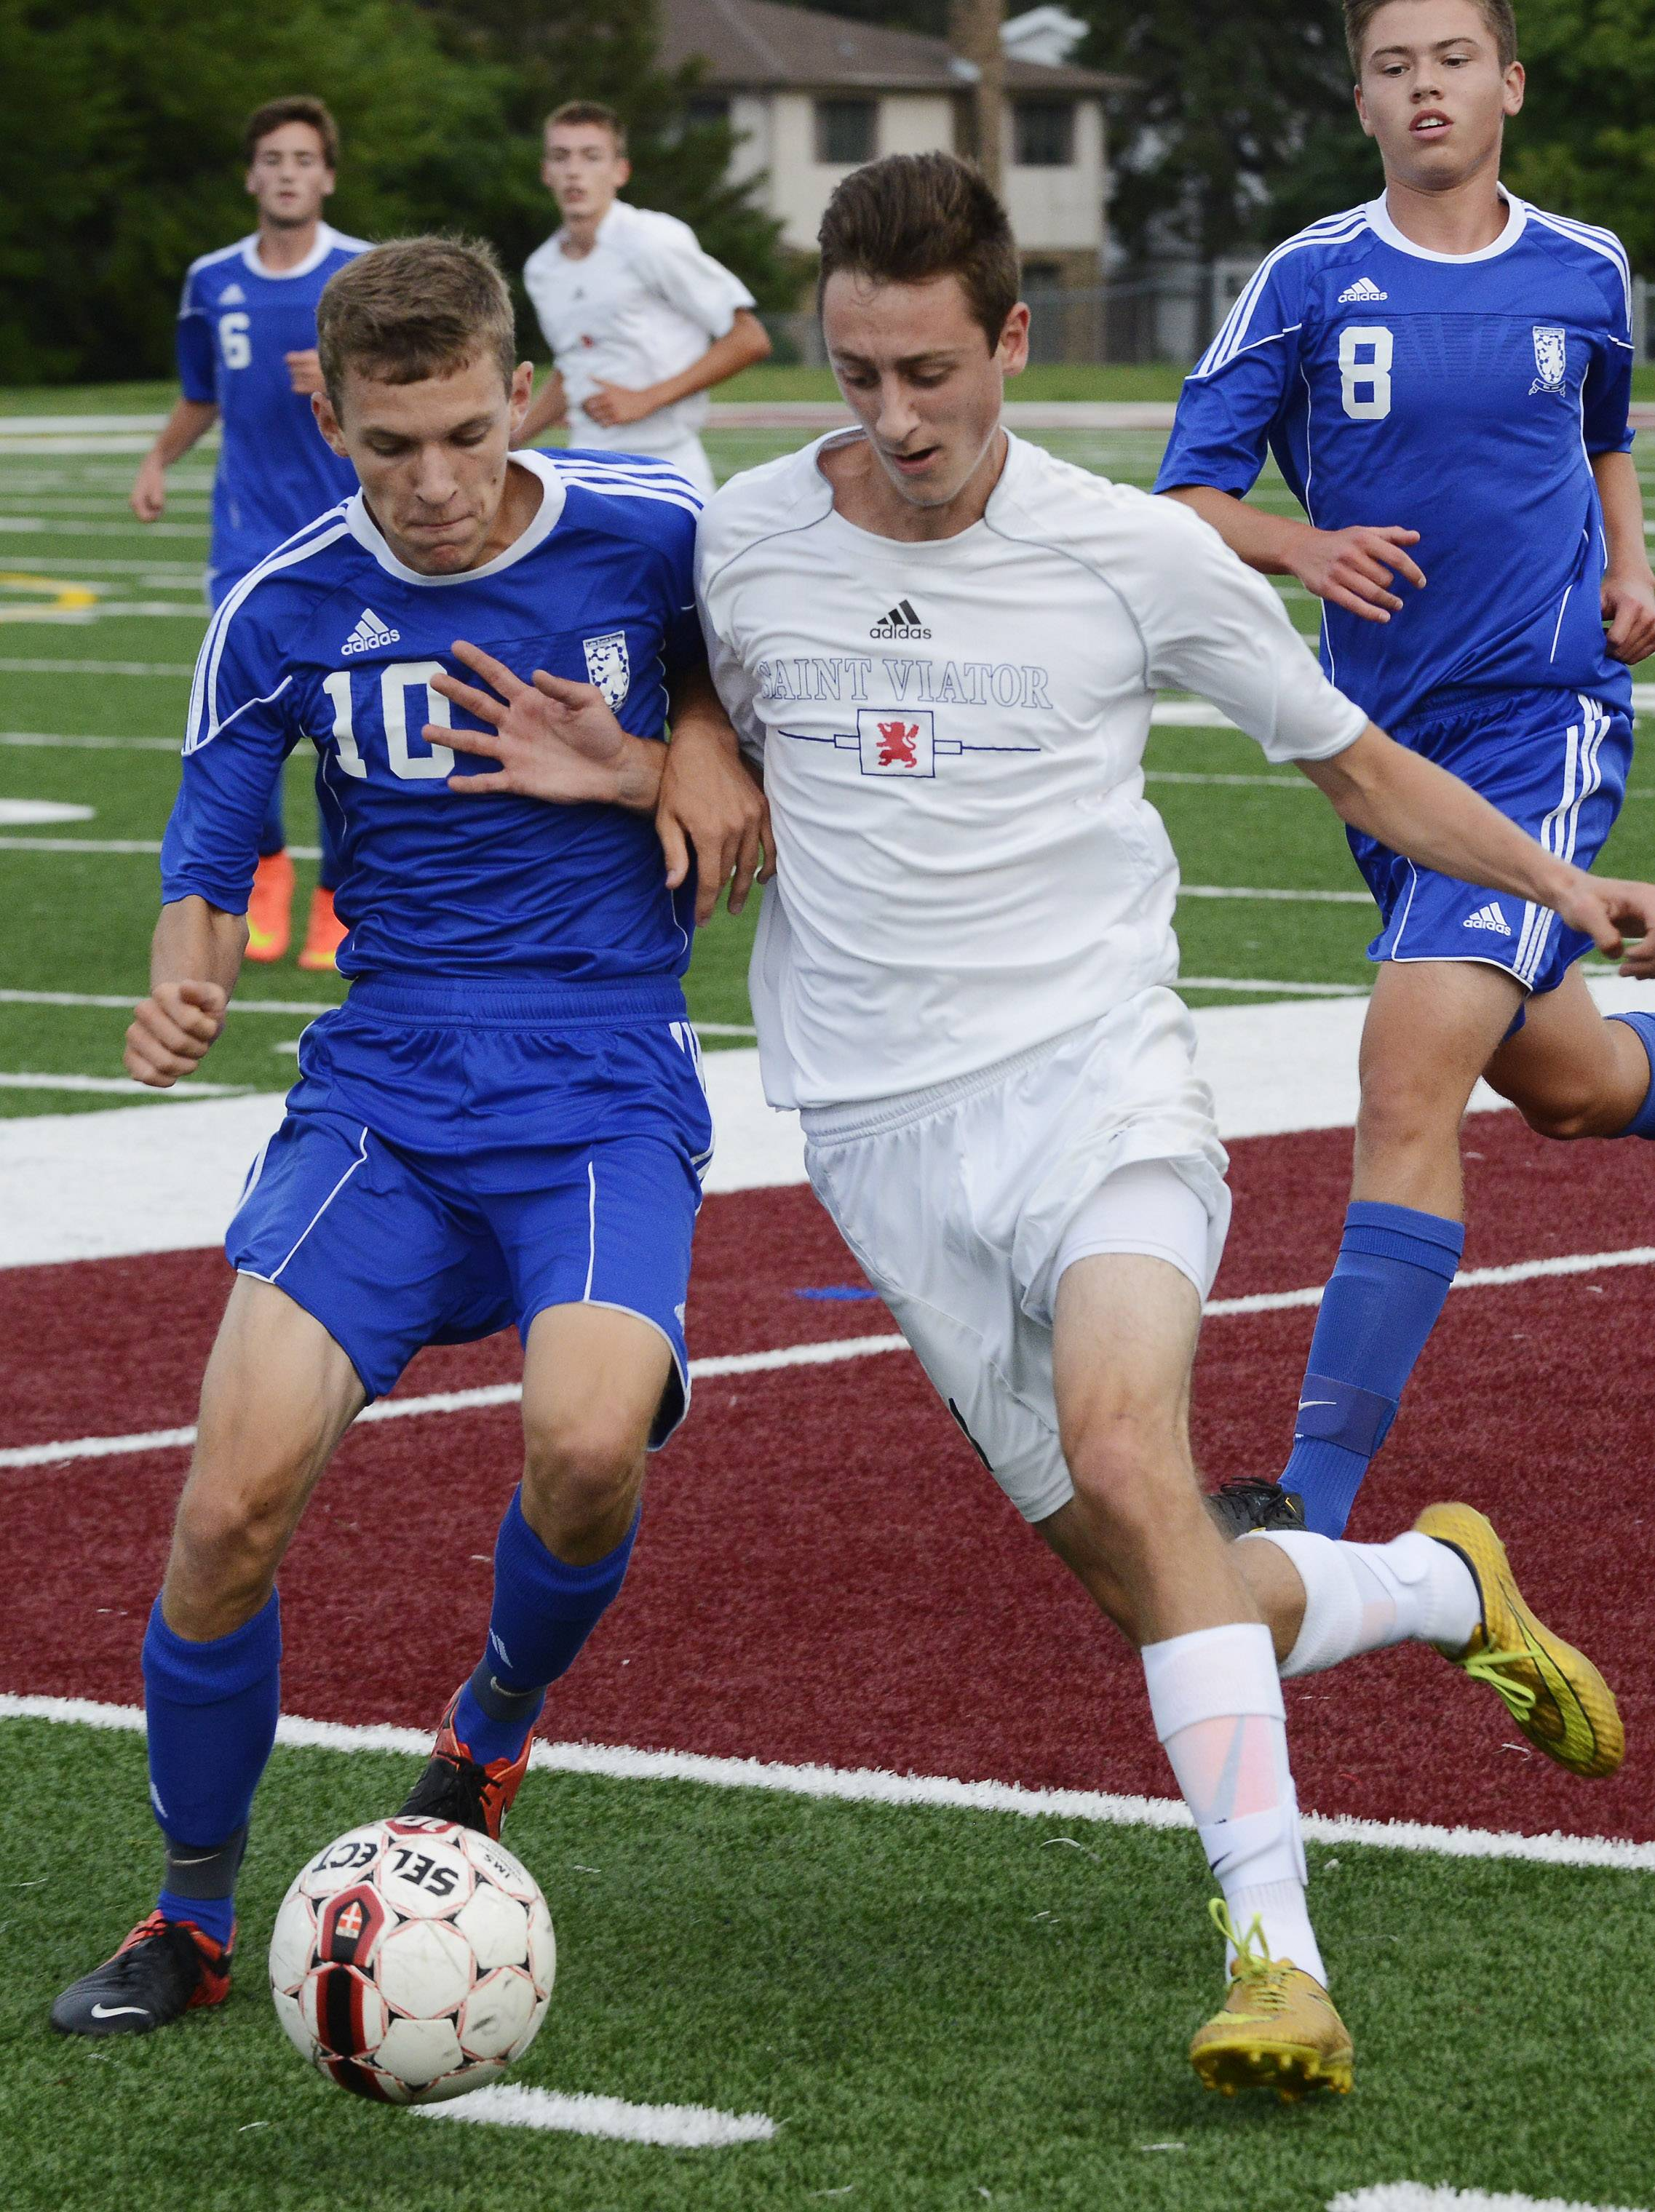 Lake Zurich's Jacob Karbowski, left, and St. Viator's Zach Gyurizca make contact as they pursue the ball during Wednesday's game in Arlington Heights.